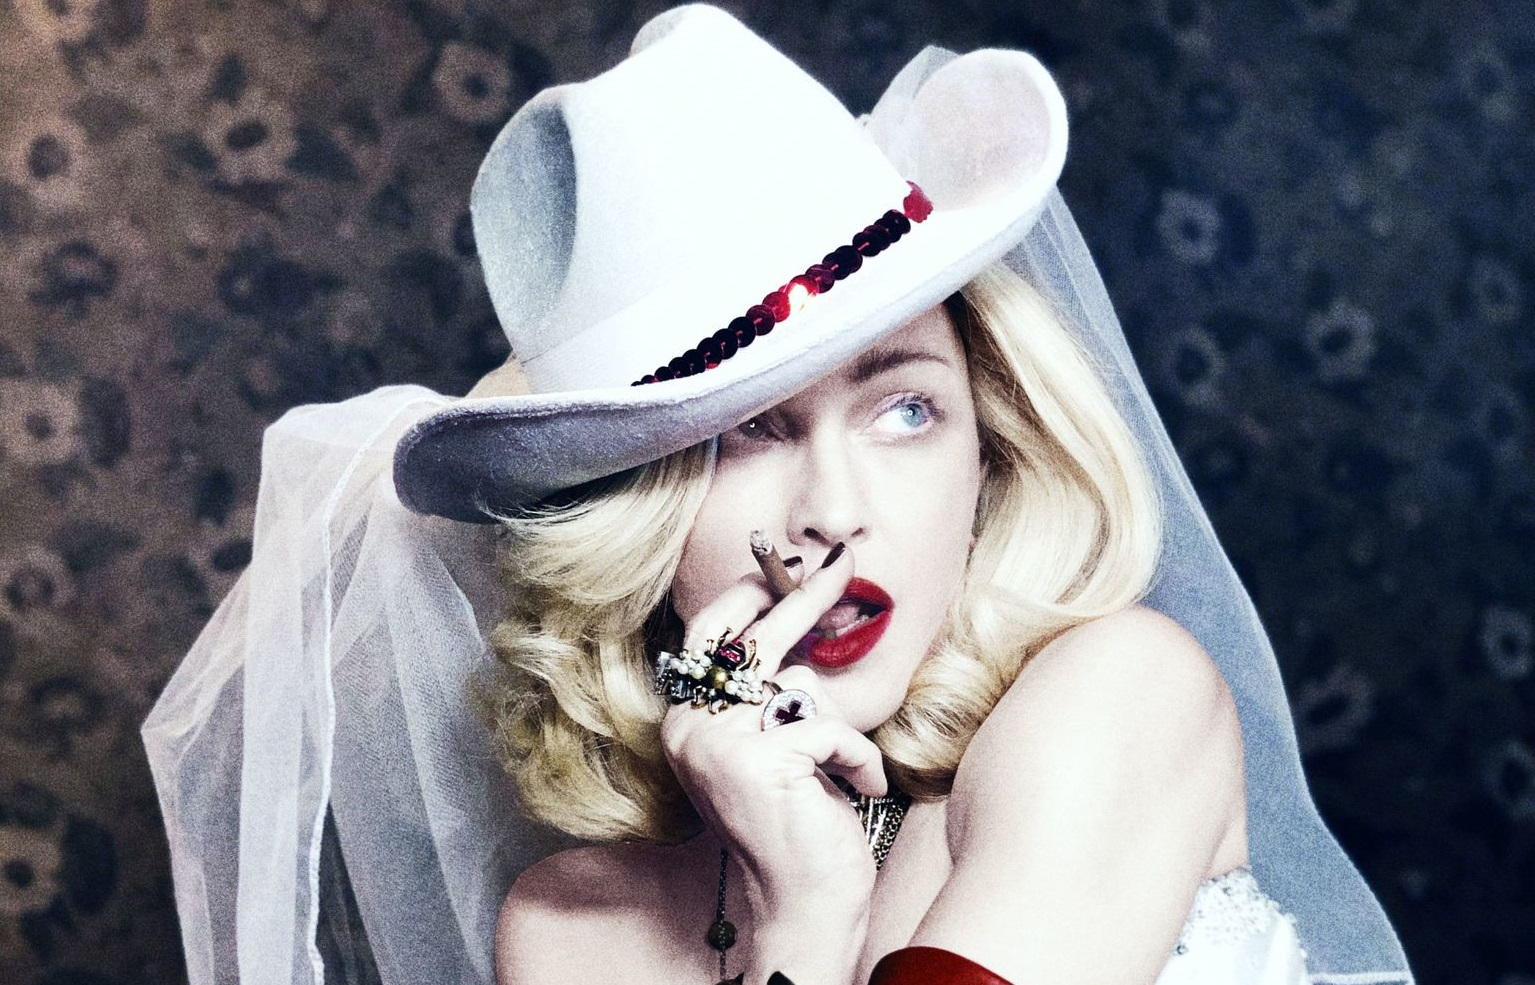 CONFIRMED: Madonna To Direct & Co-write Biopic Based On Singer's 'Untold True Story'